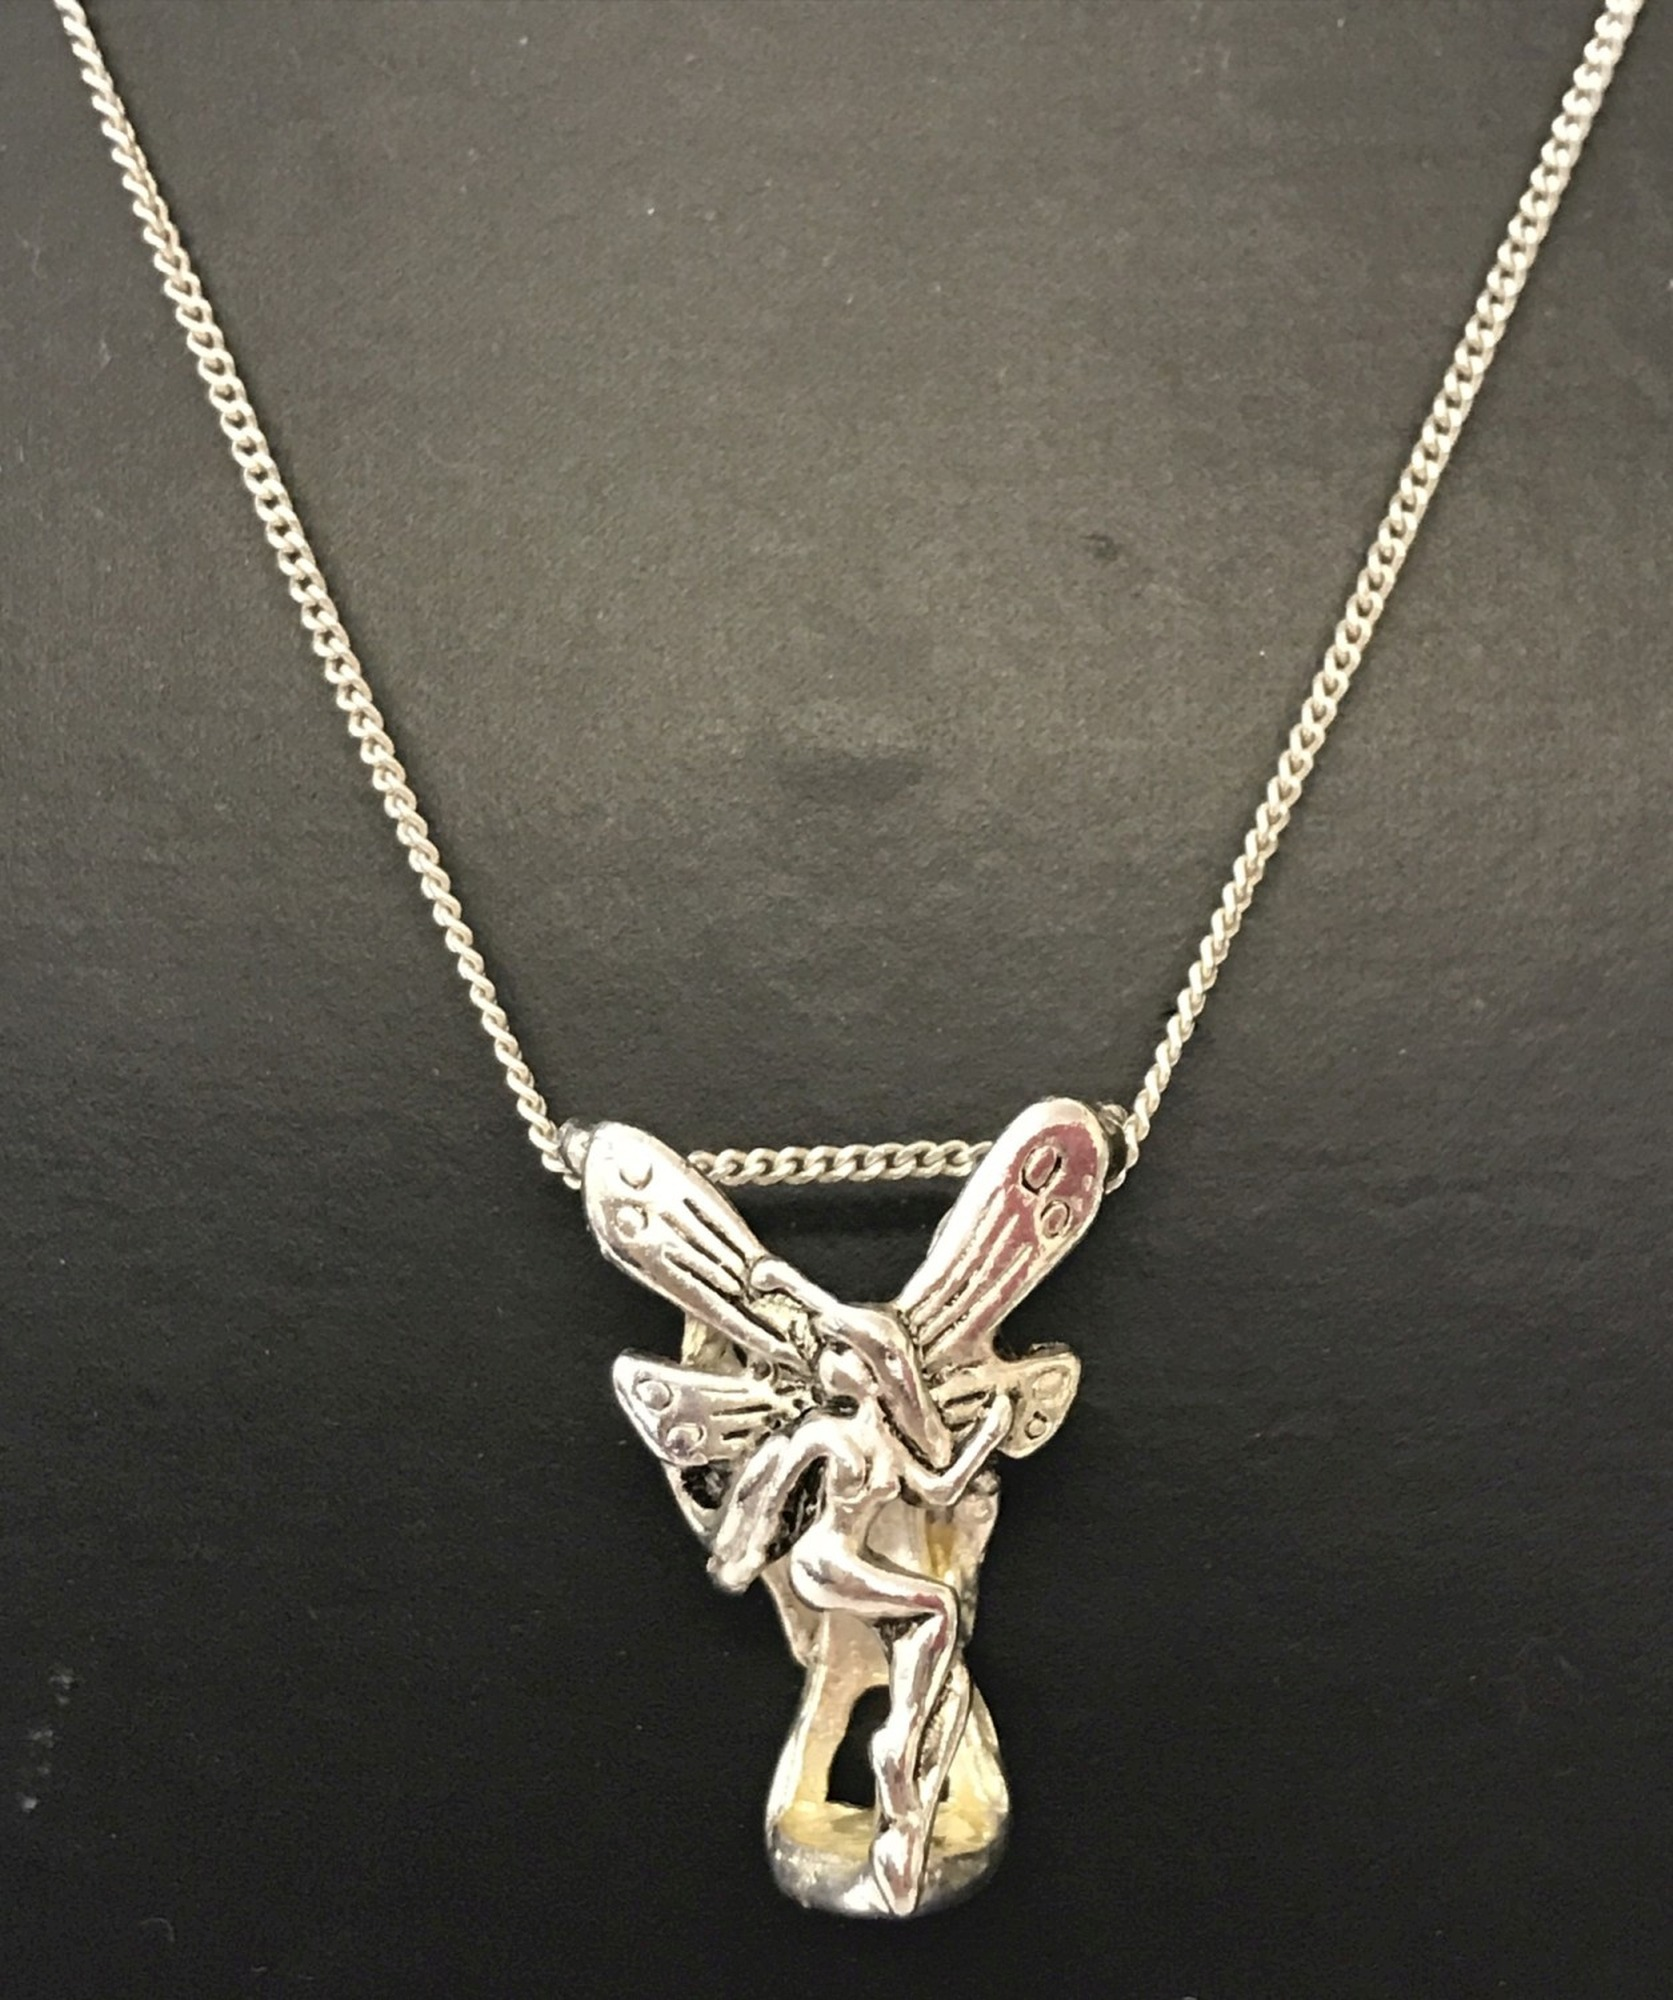 "Lot 11 - An Art Nouveau style 3 dimensional fairy pendant on a silver 18"" fine curb chain."